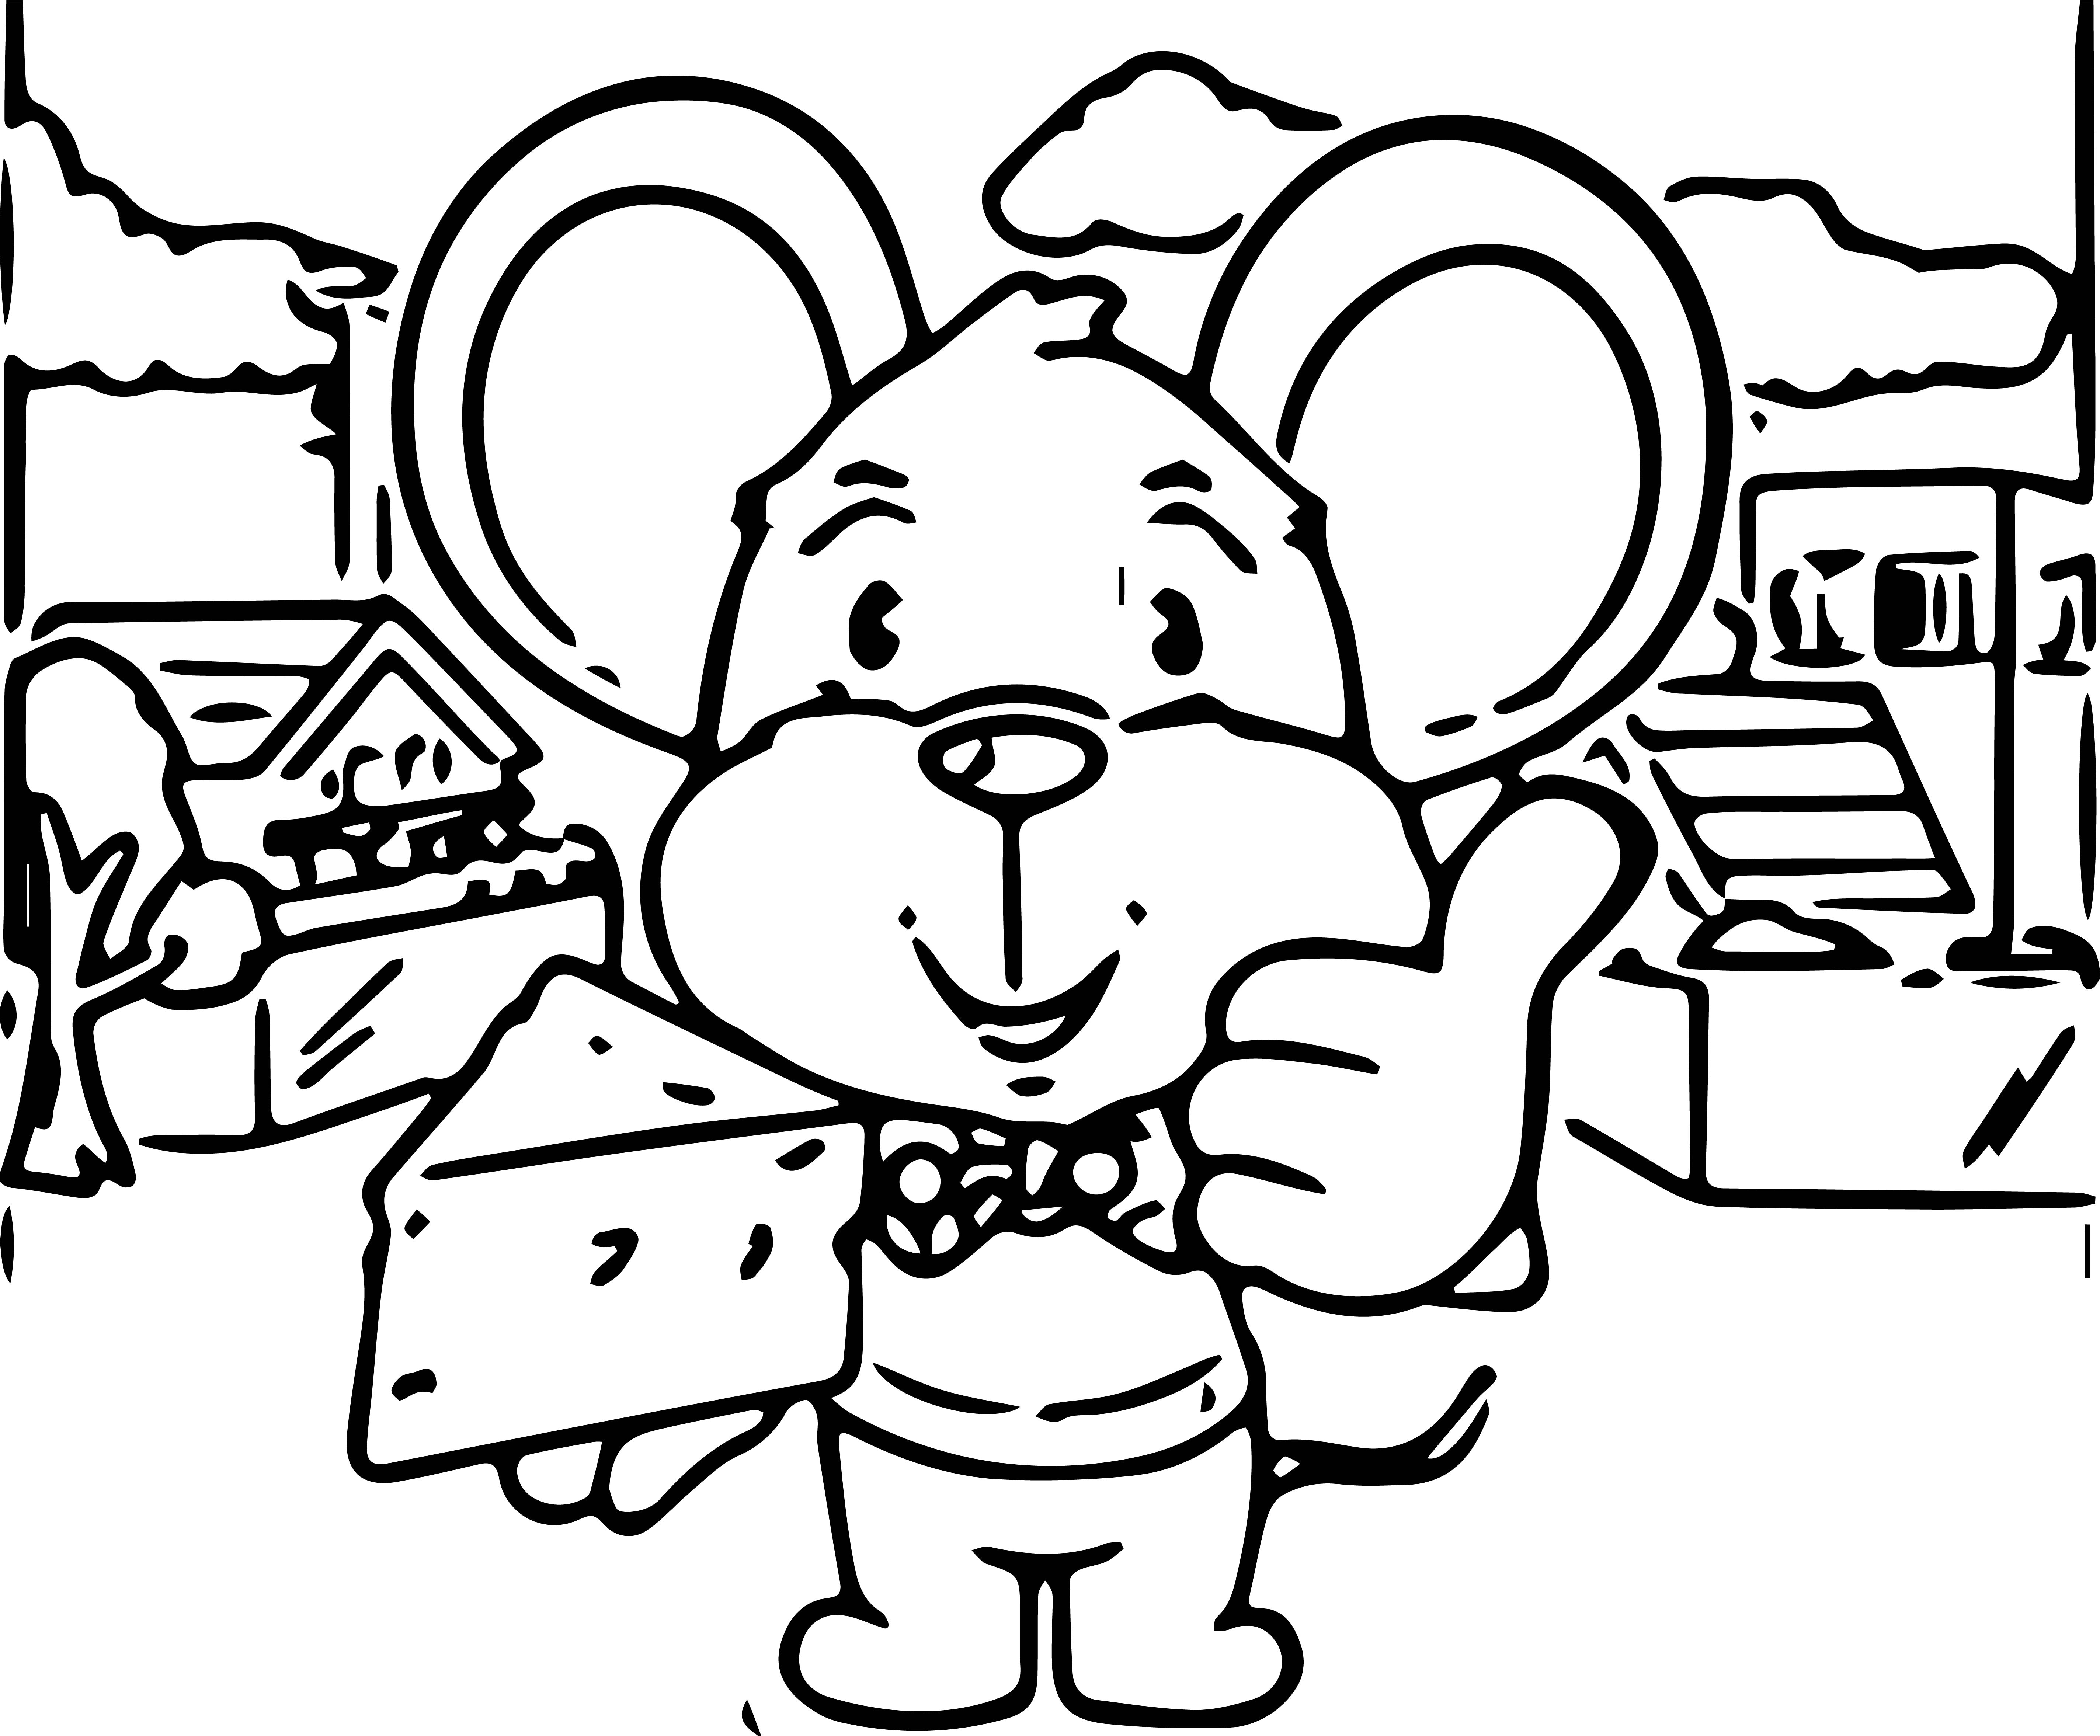 Mouse Jpeg Coloring Page 090